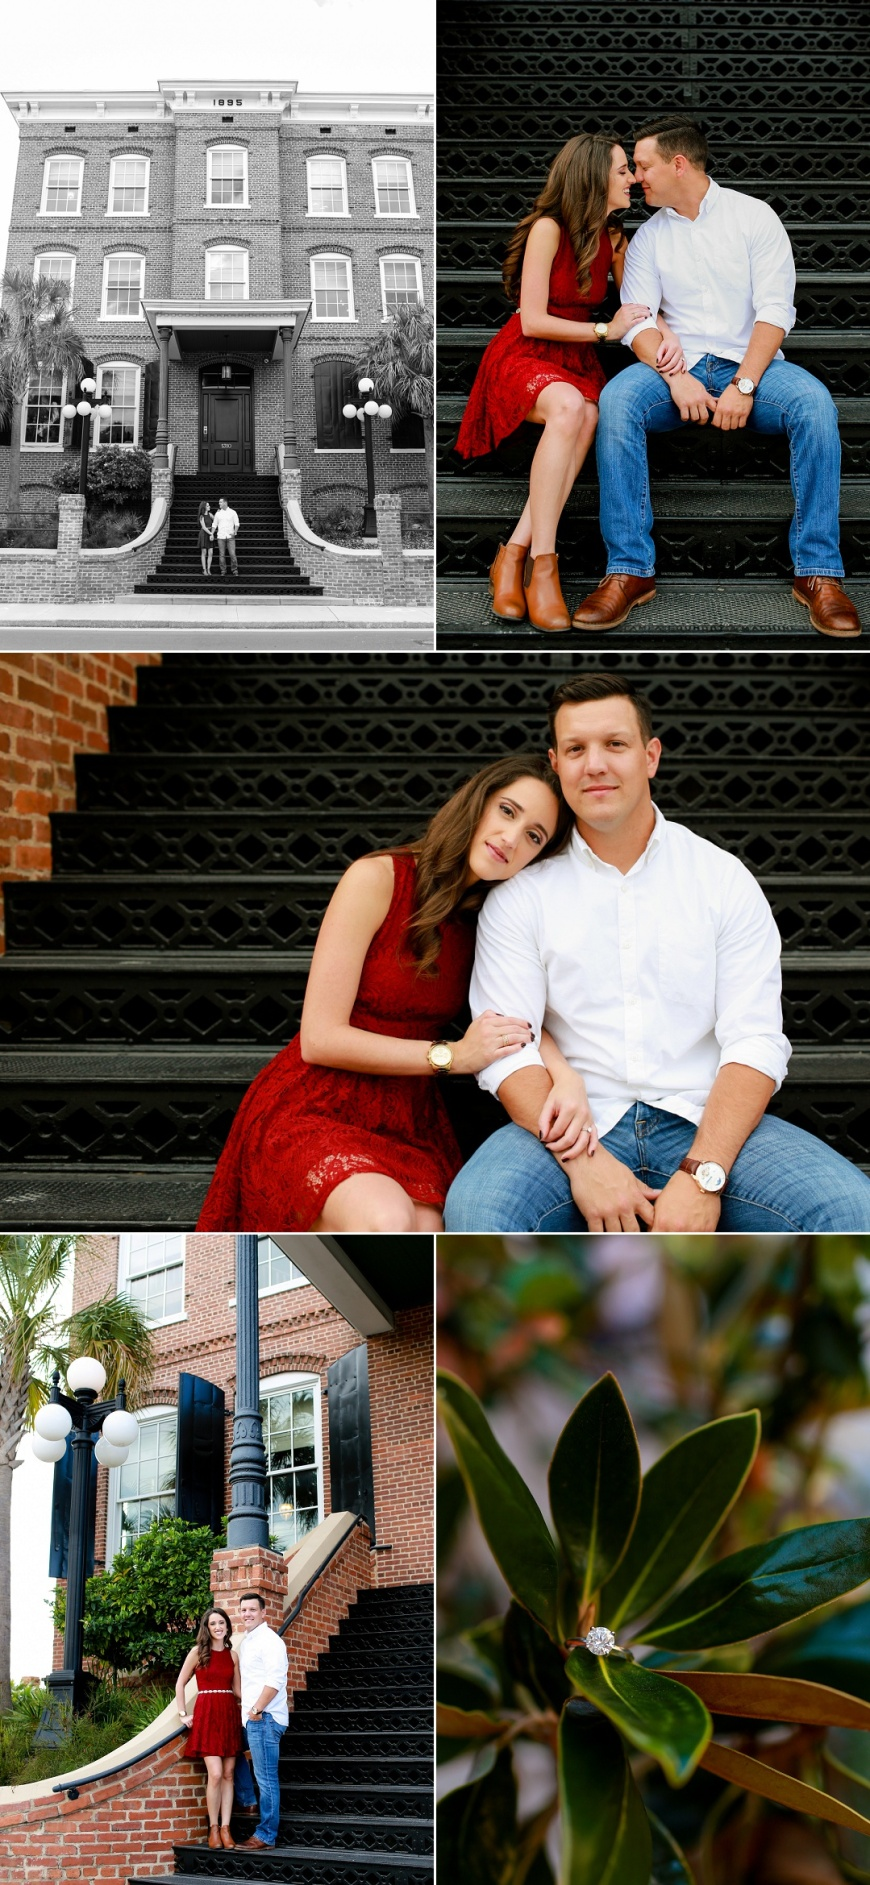 Ybor-City-Tampa-Engagement-Photographer_1007.jpg